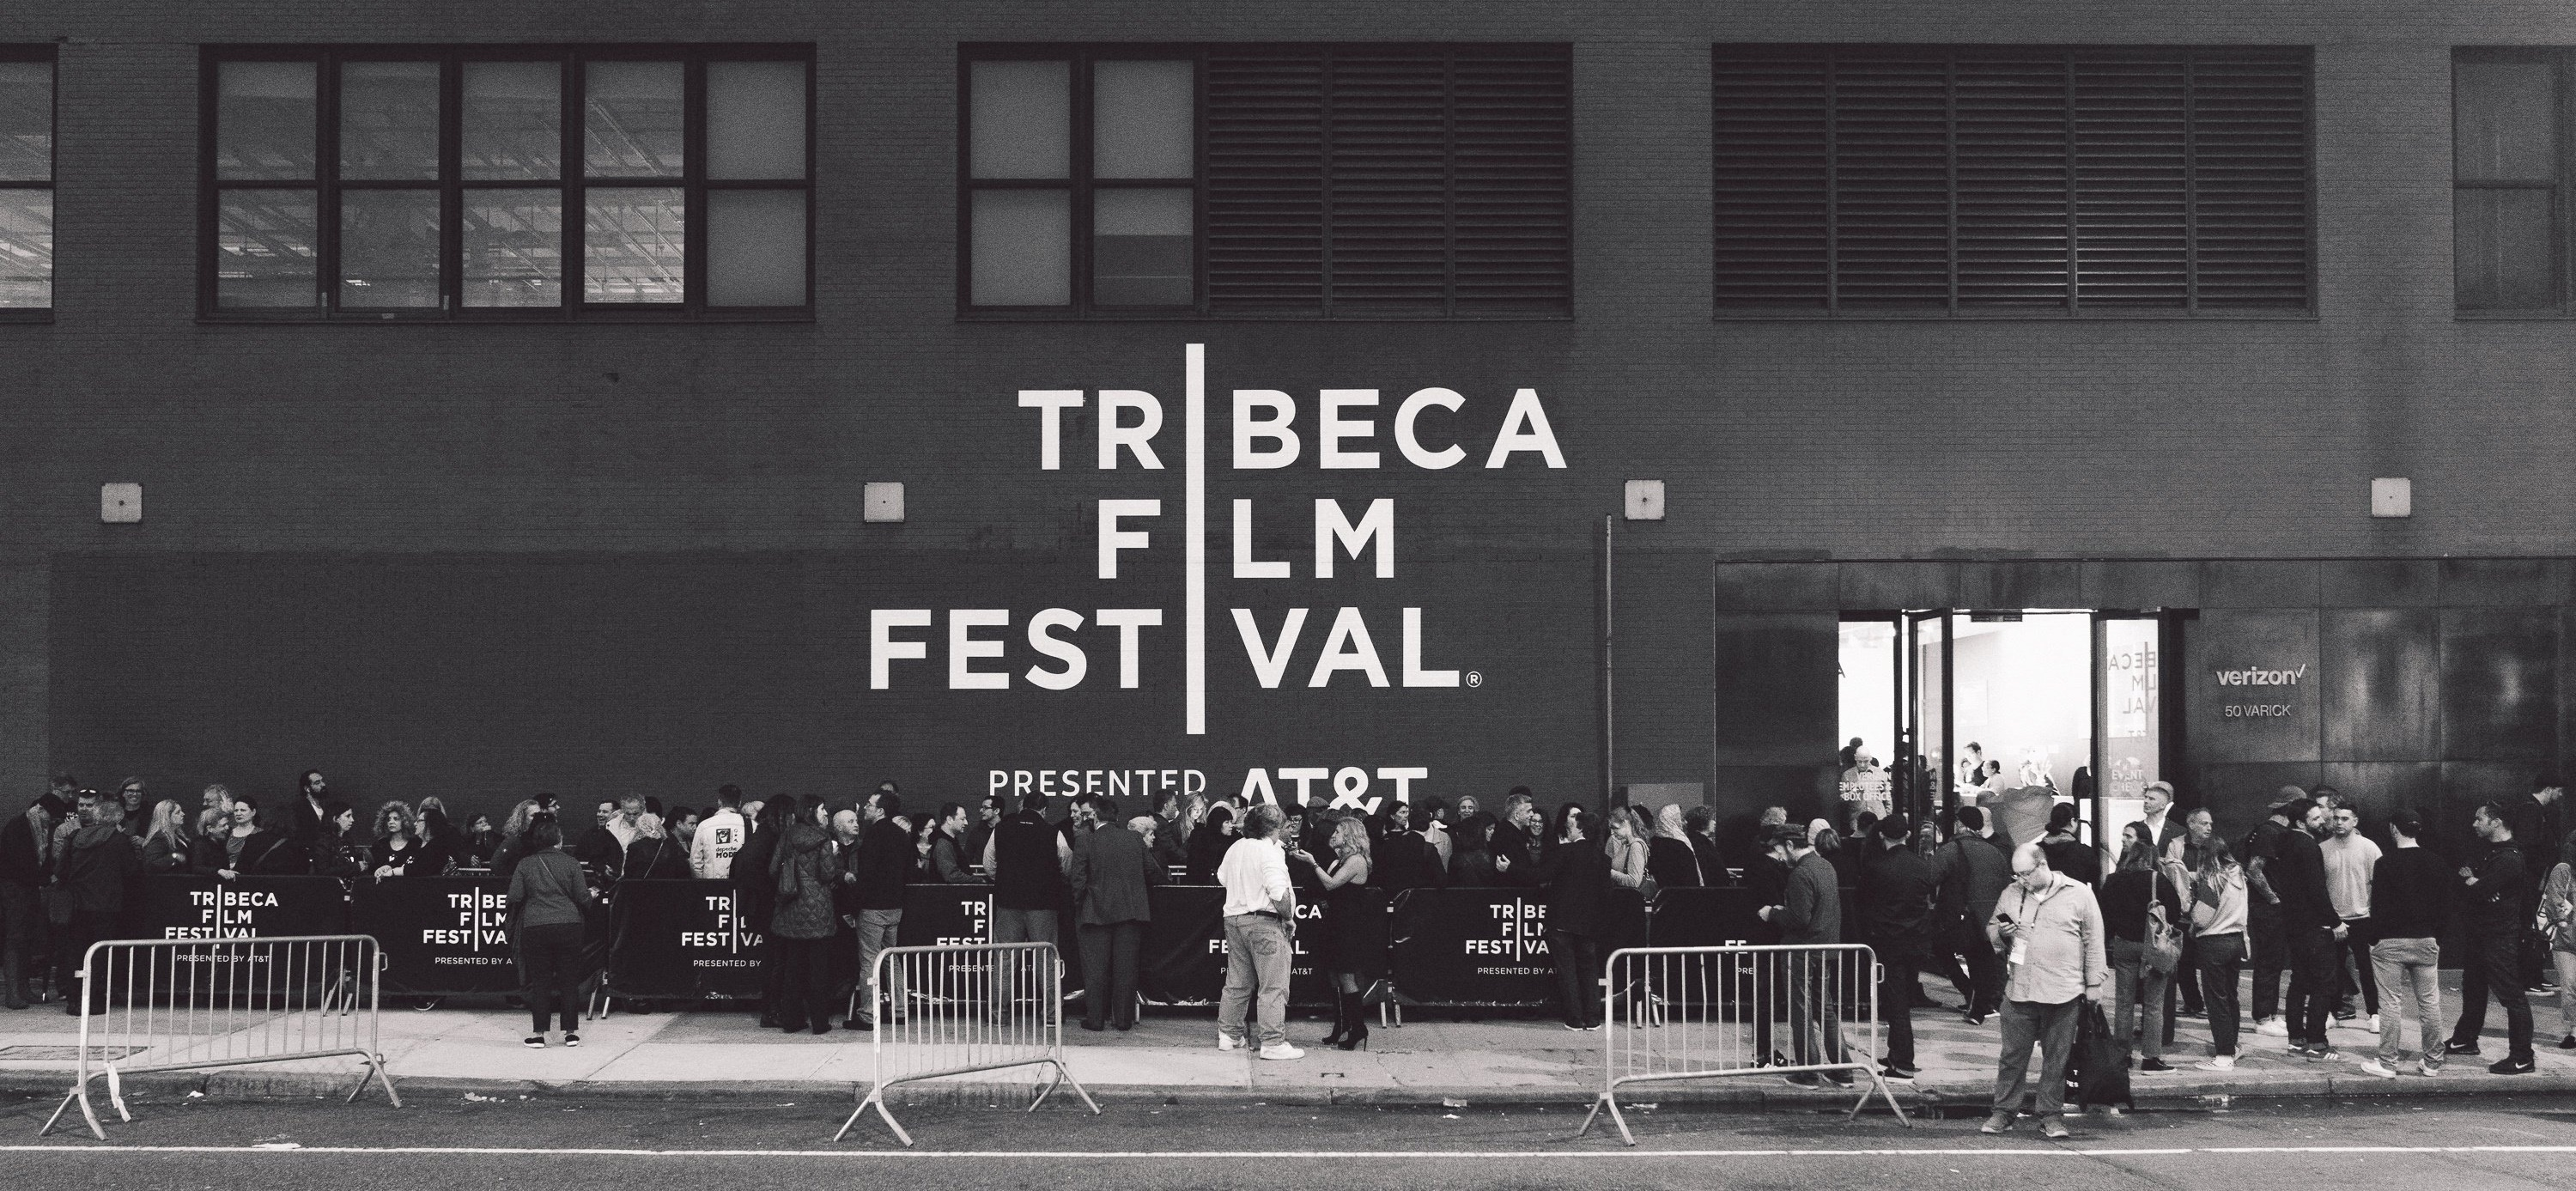 Take a Private Jet Charter in Las Vegas to the Tribeca Film Festival